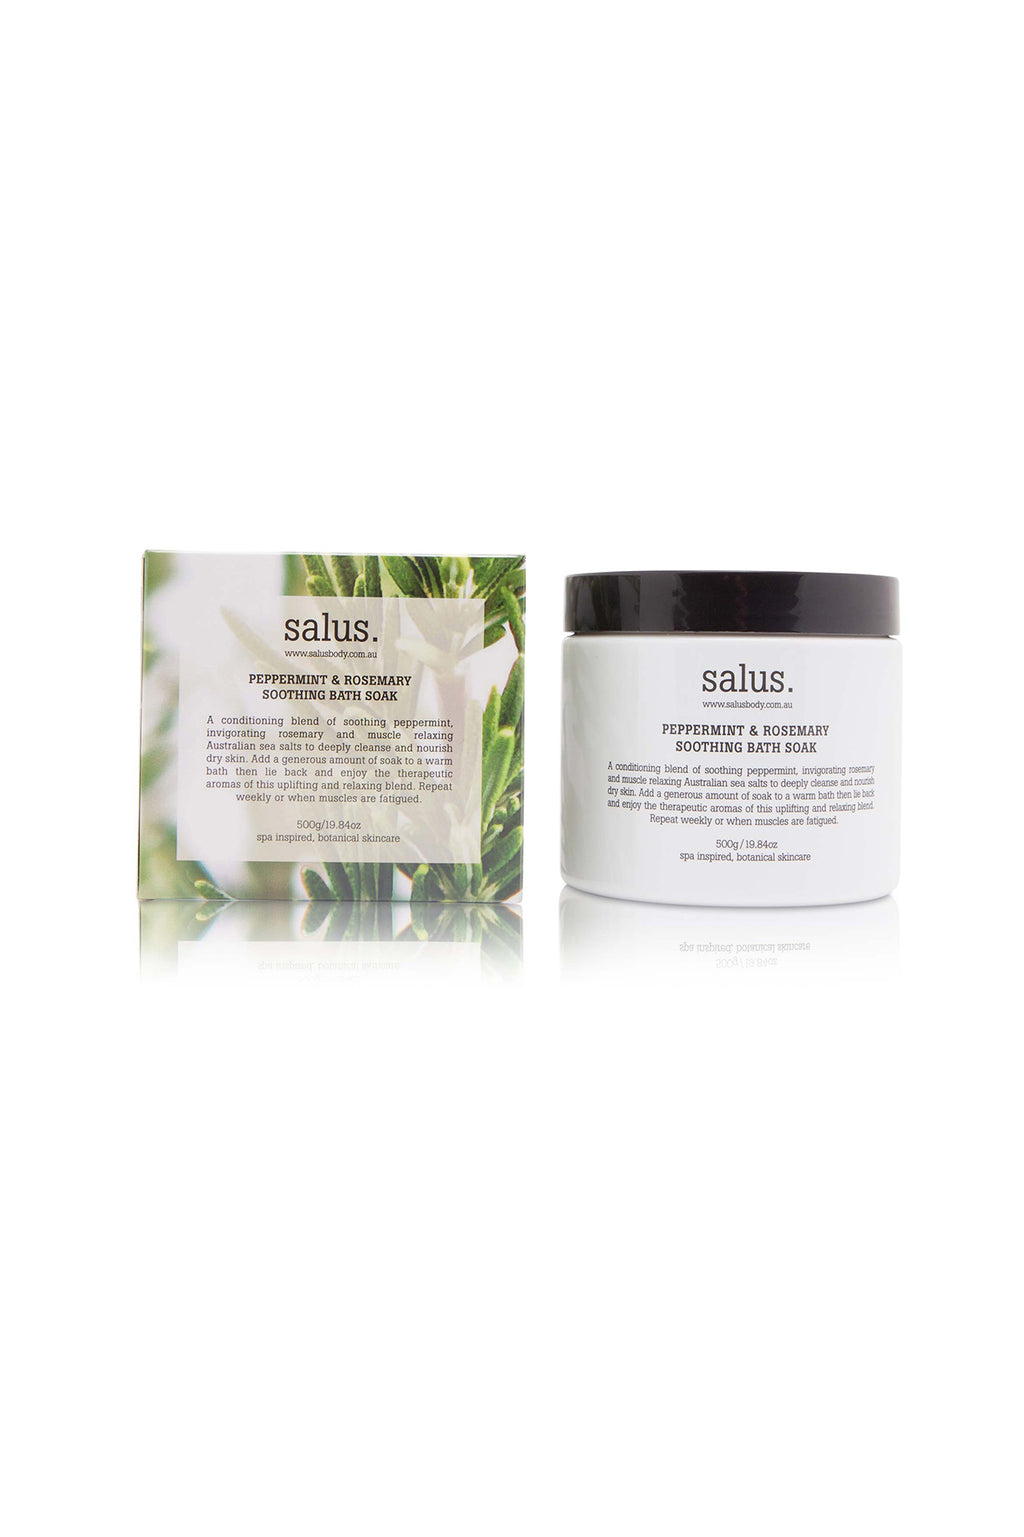 SALUS - PEPPERMINT & ROSEMARY SOOTHING BODY SOAK - 500G - Tempted Kensington